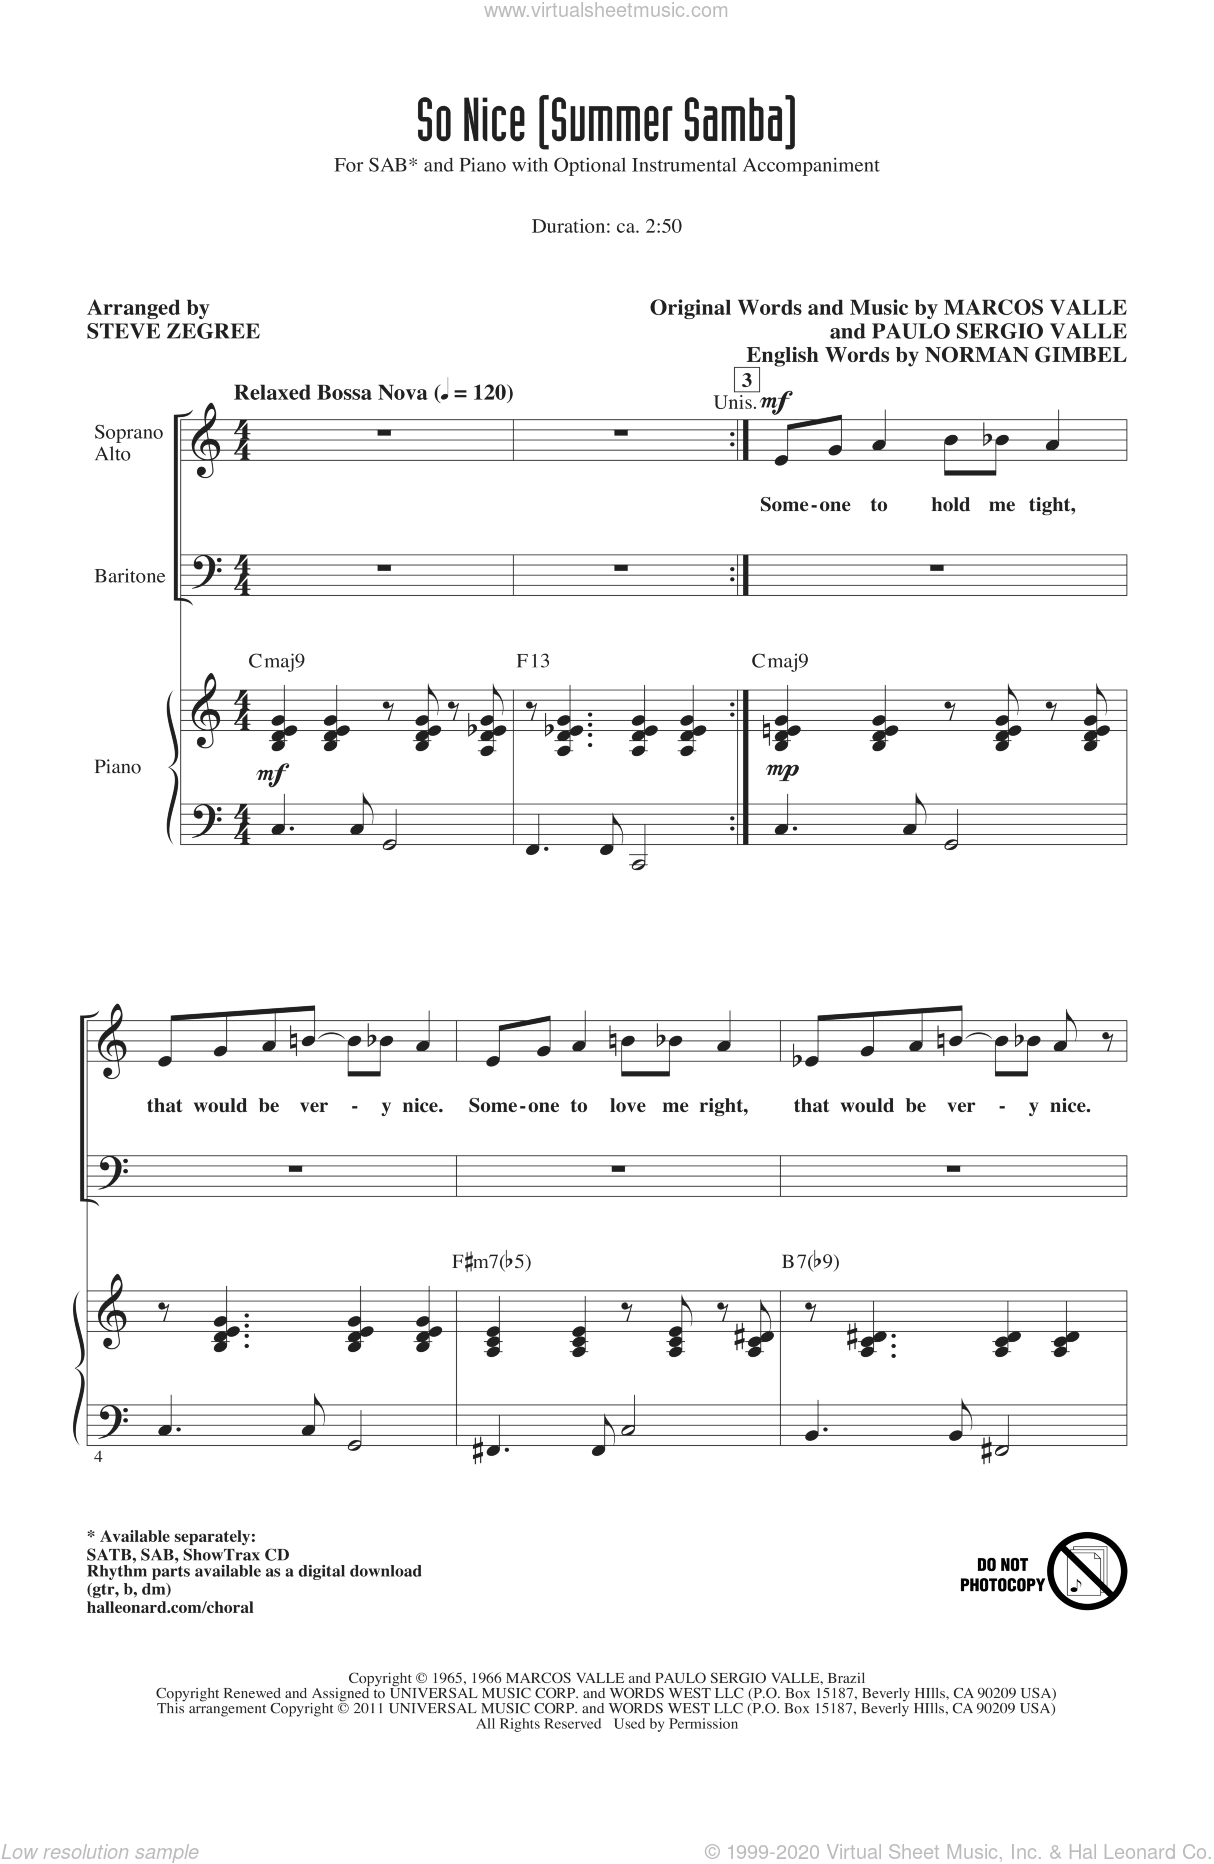 So Nice (Summer Samba) sheet music for choir and piano (SAB) by Marcos Valle